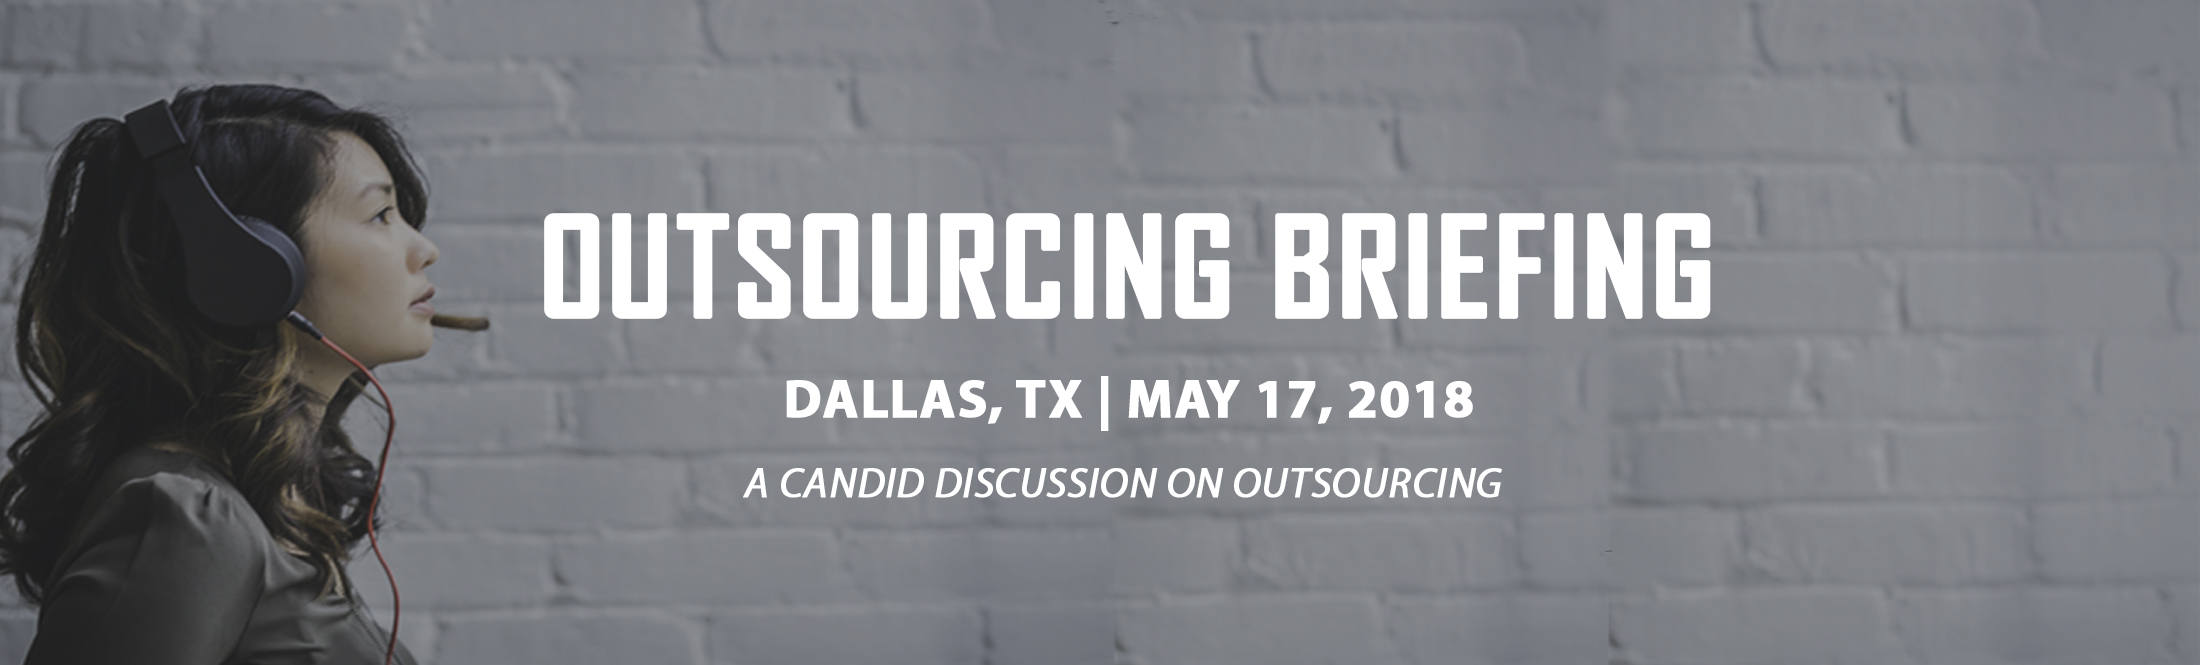 Dallas Outsourcing Briefing